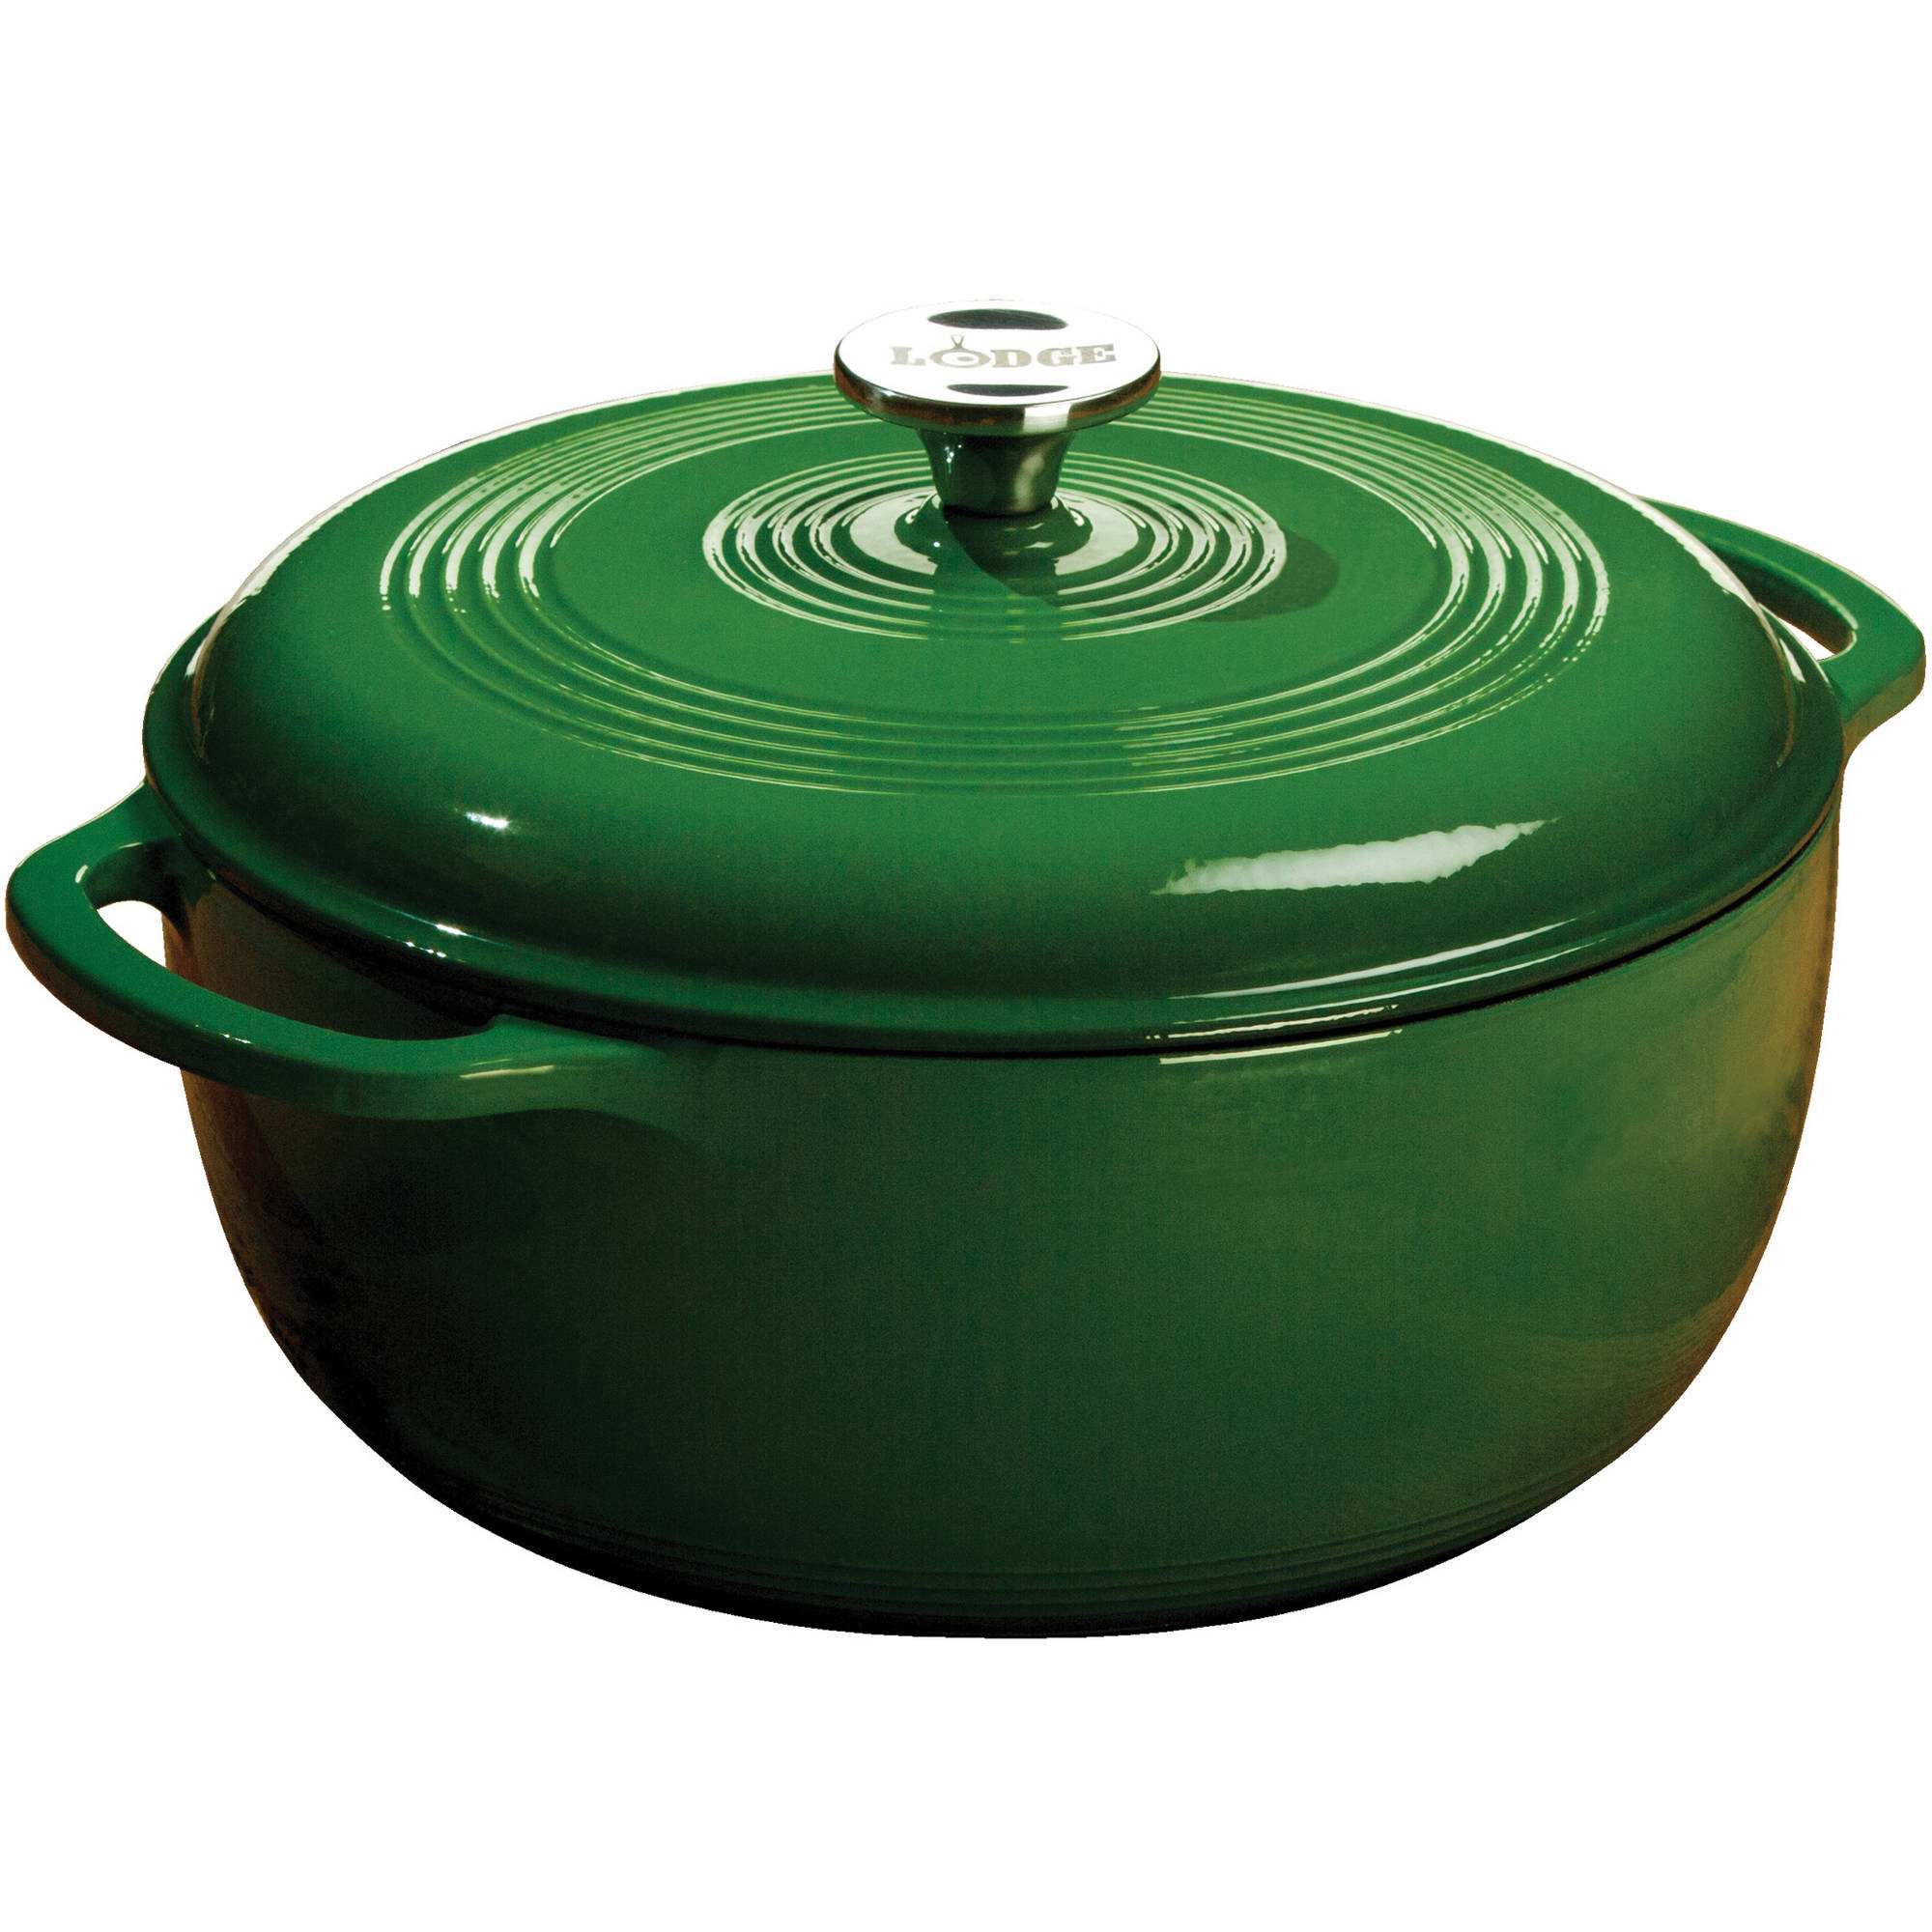 Lodge Enameled Cast Iron 6 Quart Dutch Oven, Green, EC6D53